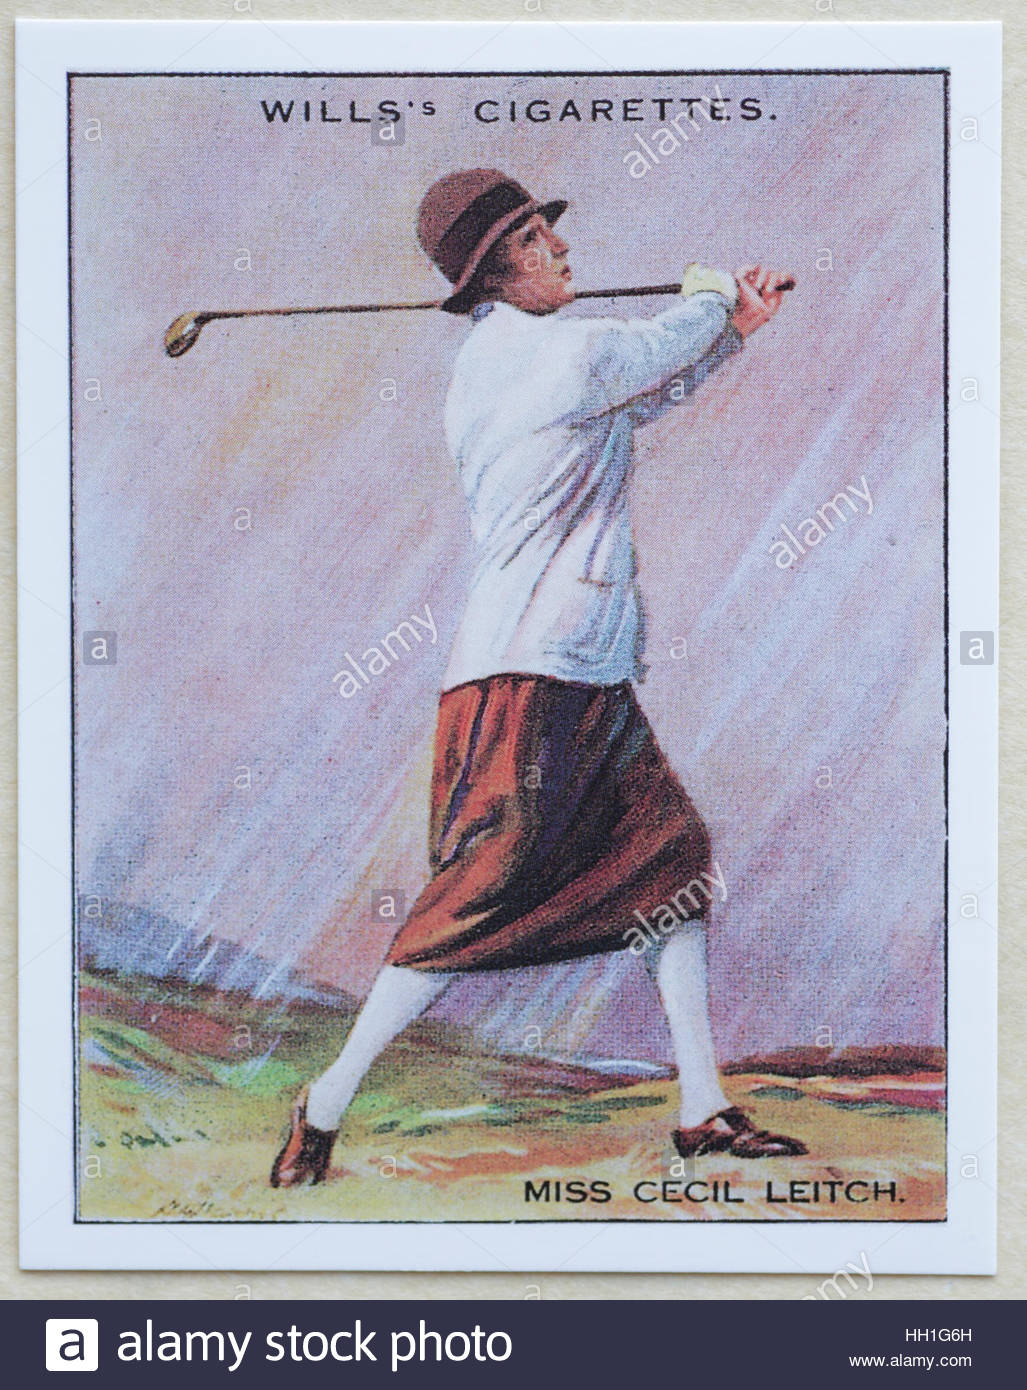 Miss Cecil Leitch - Famous Golfers, cigarette cards issued in 1930 by W.D.& H.O. Wills cigarettes. - Stock Image